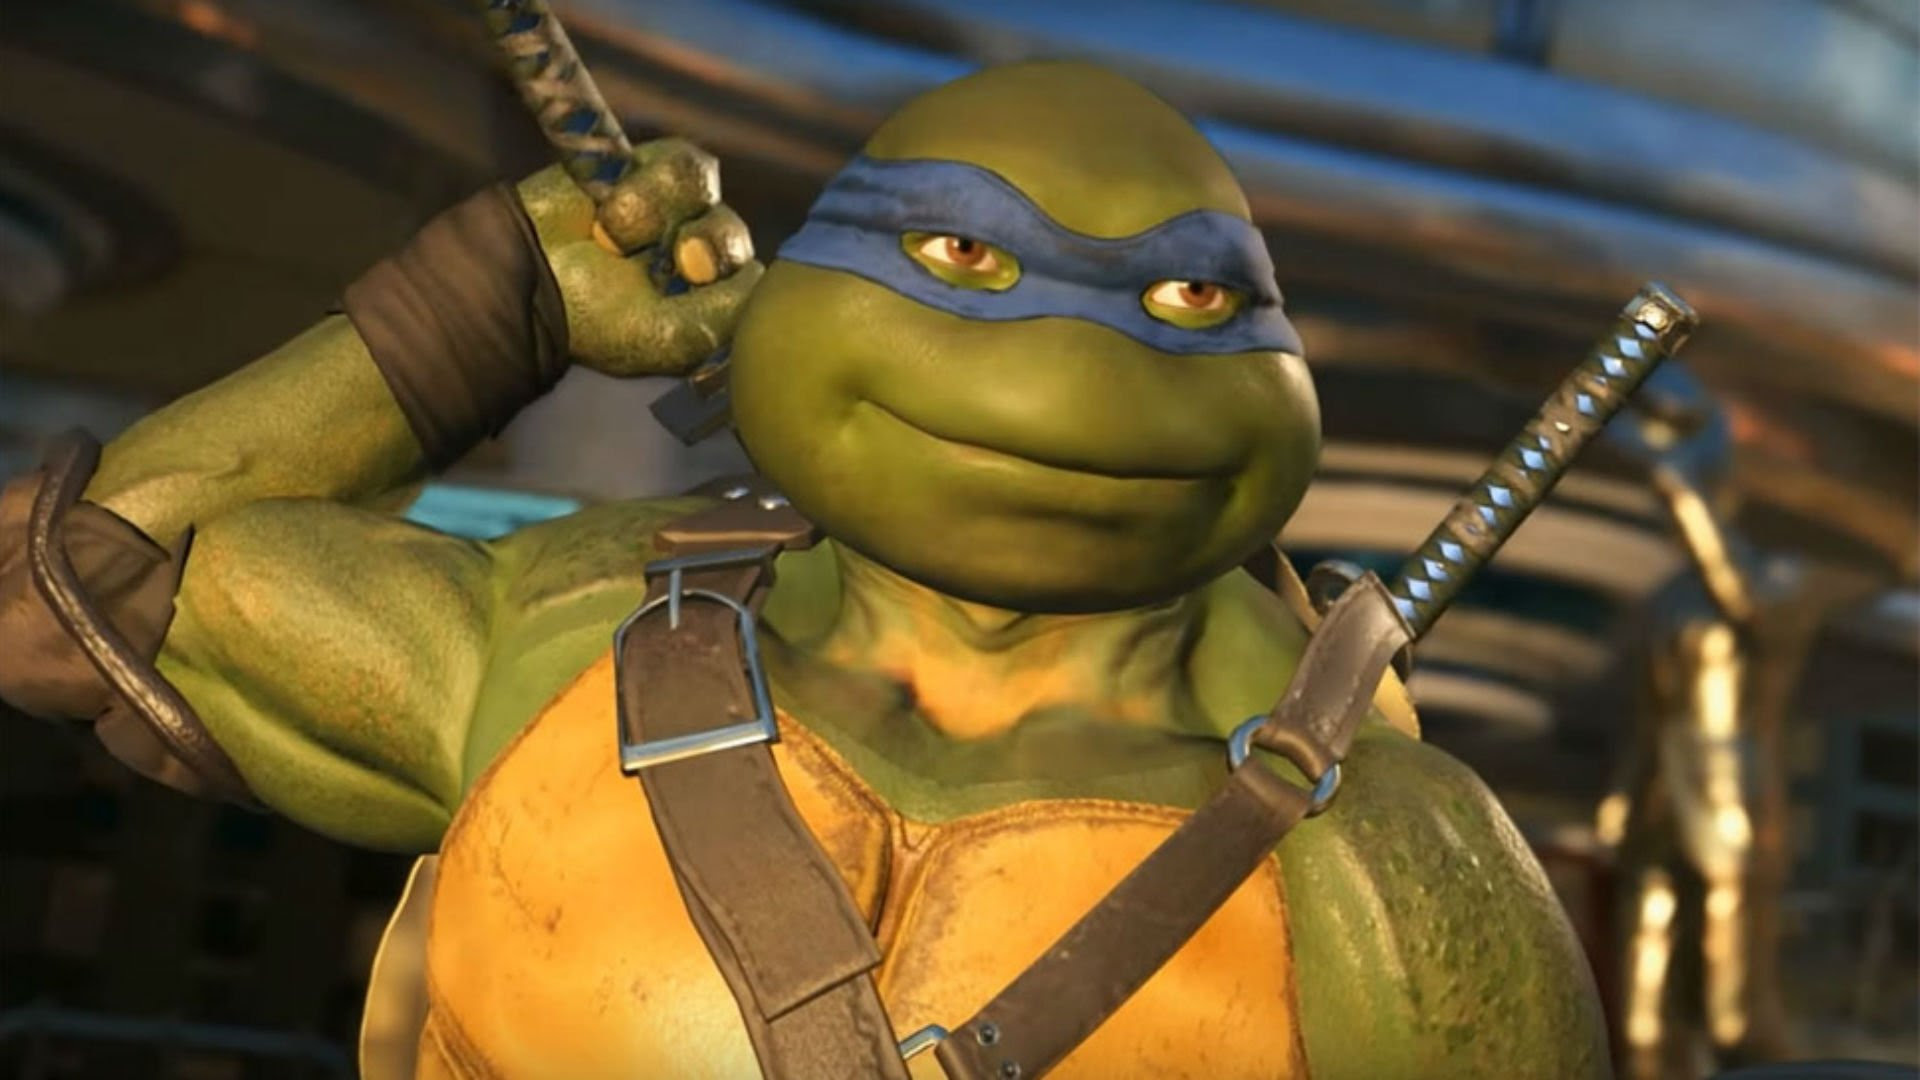 The Teenage Mutant Ninja Turtles are now available in Injustice 2 screenshot